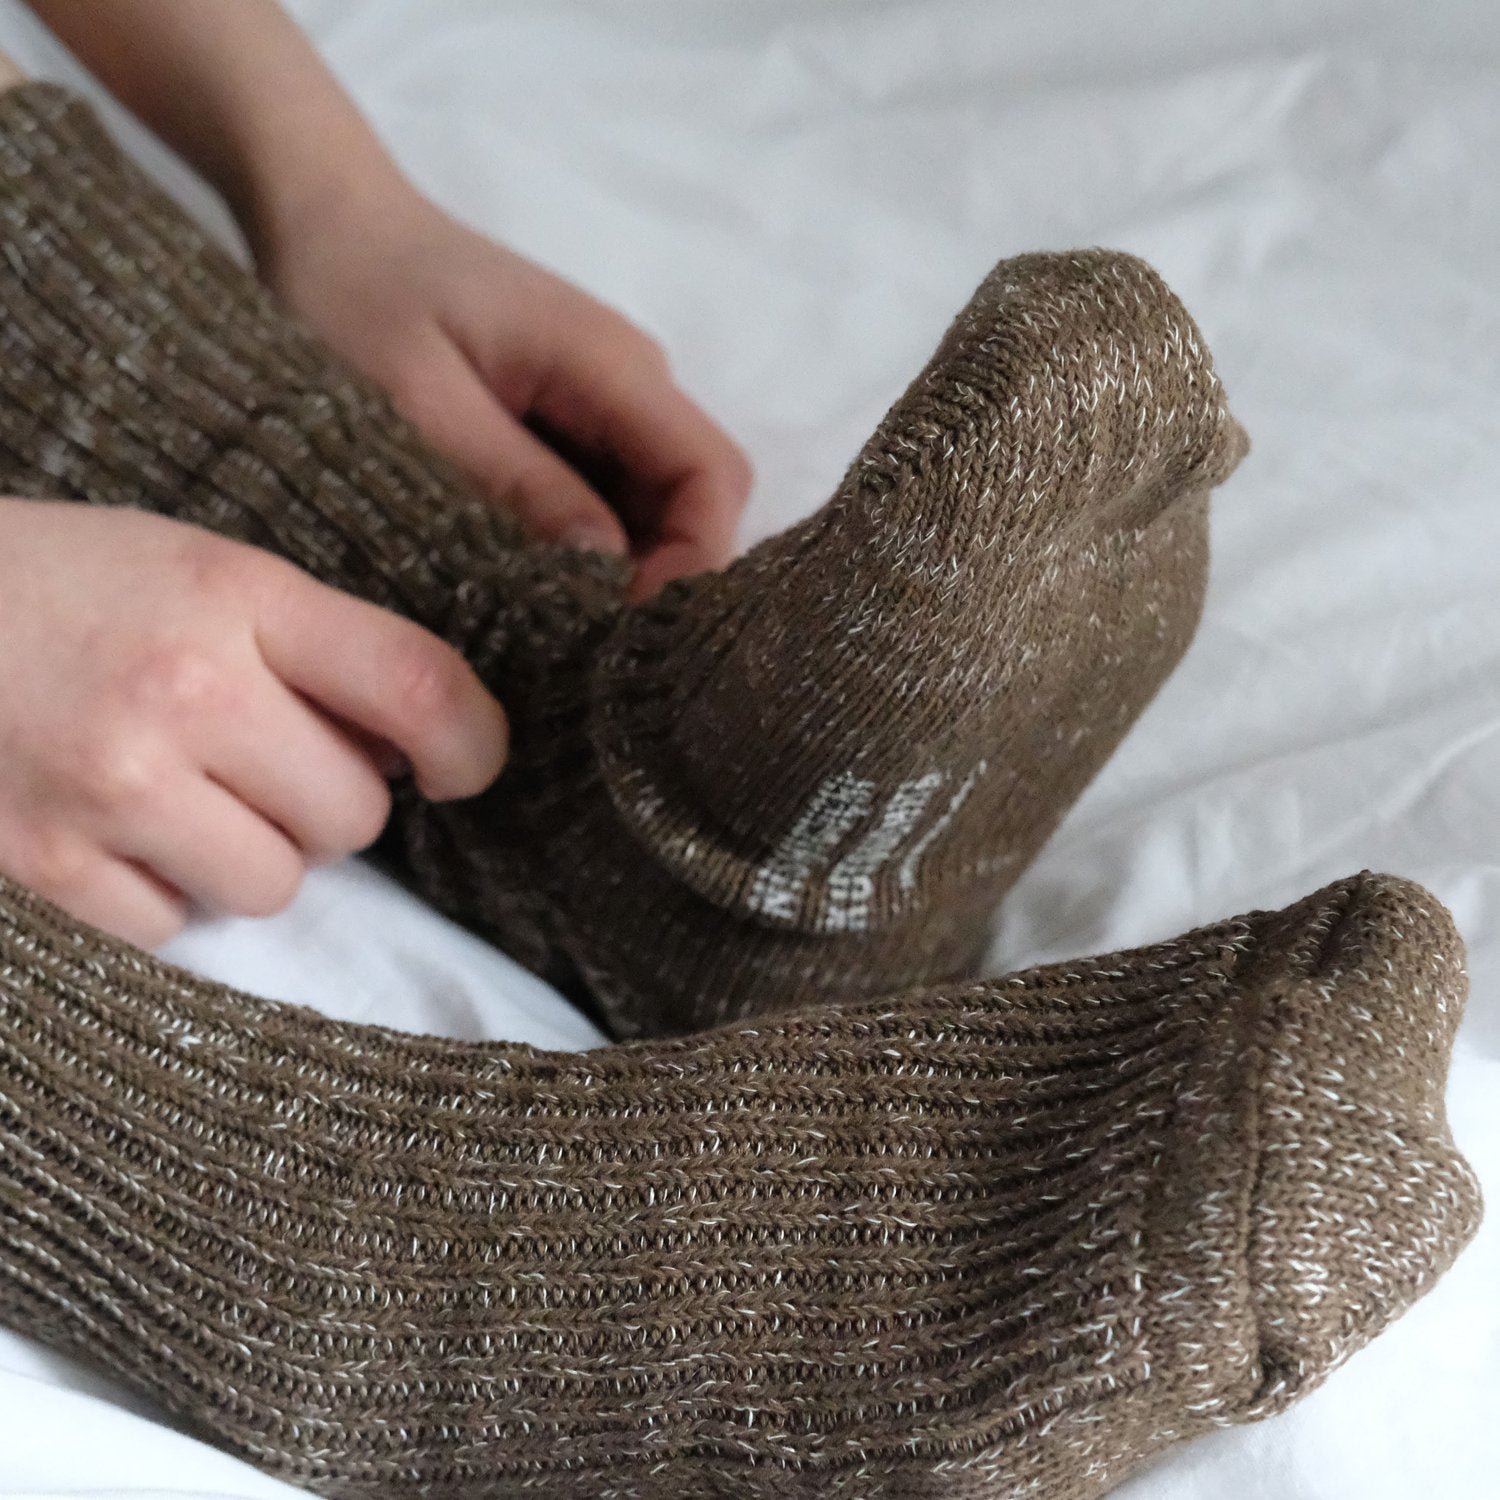 boston hemp cotton socks